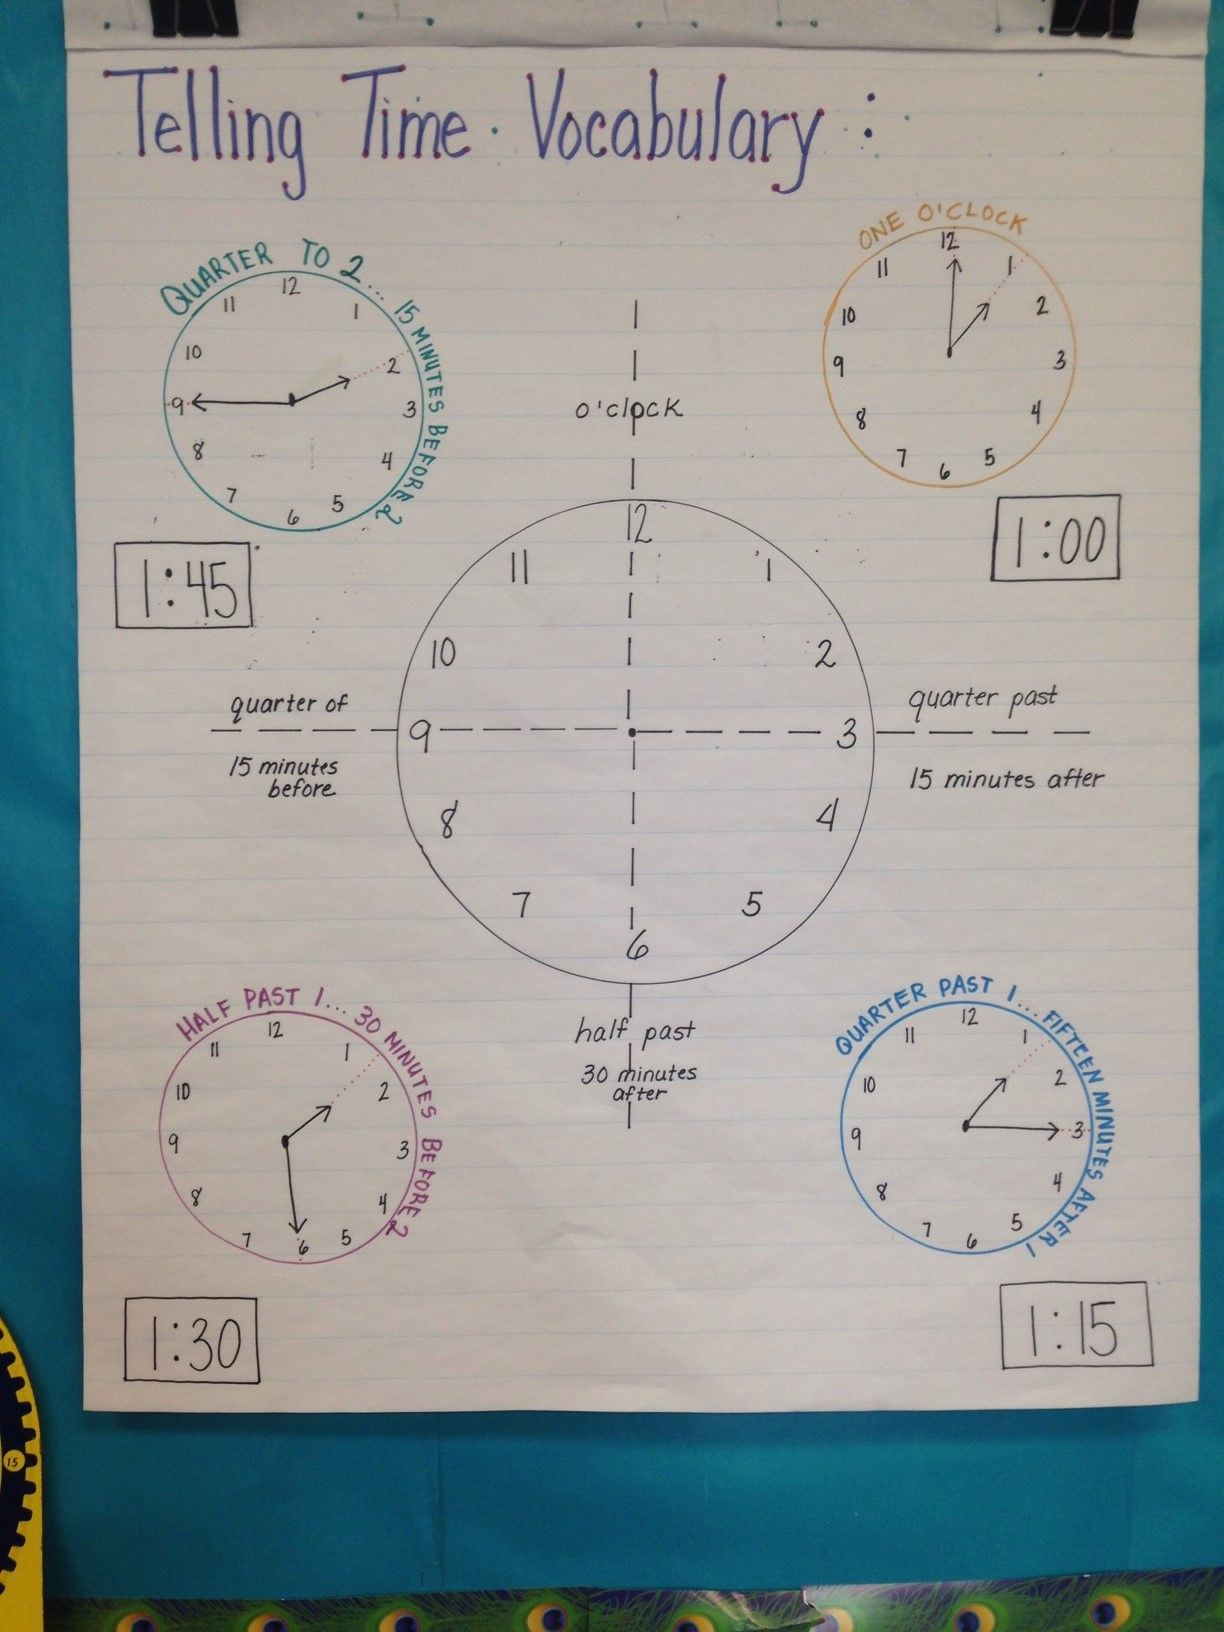 Telling Time 2nd Grade Vocabulary Visual I Created This